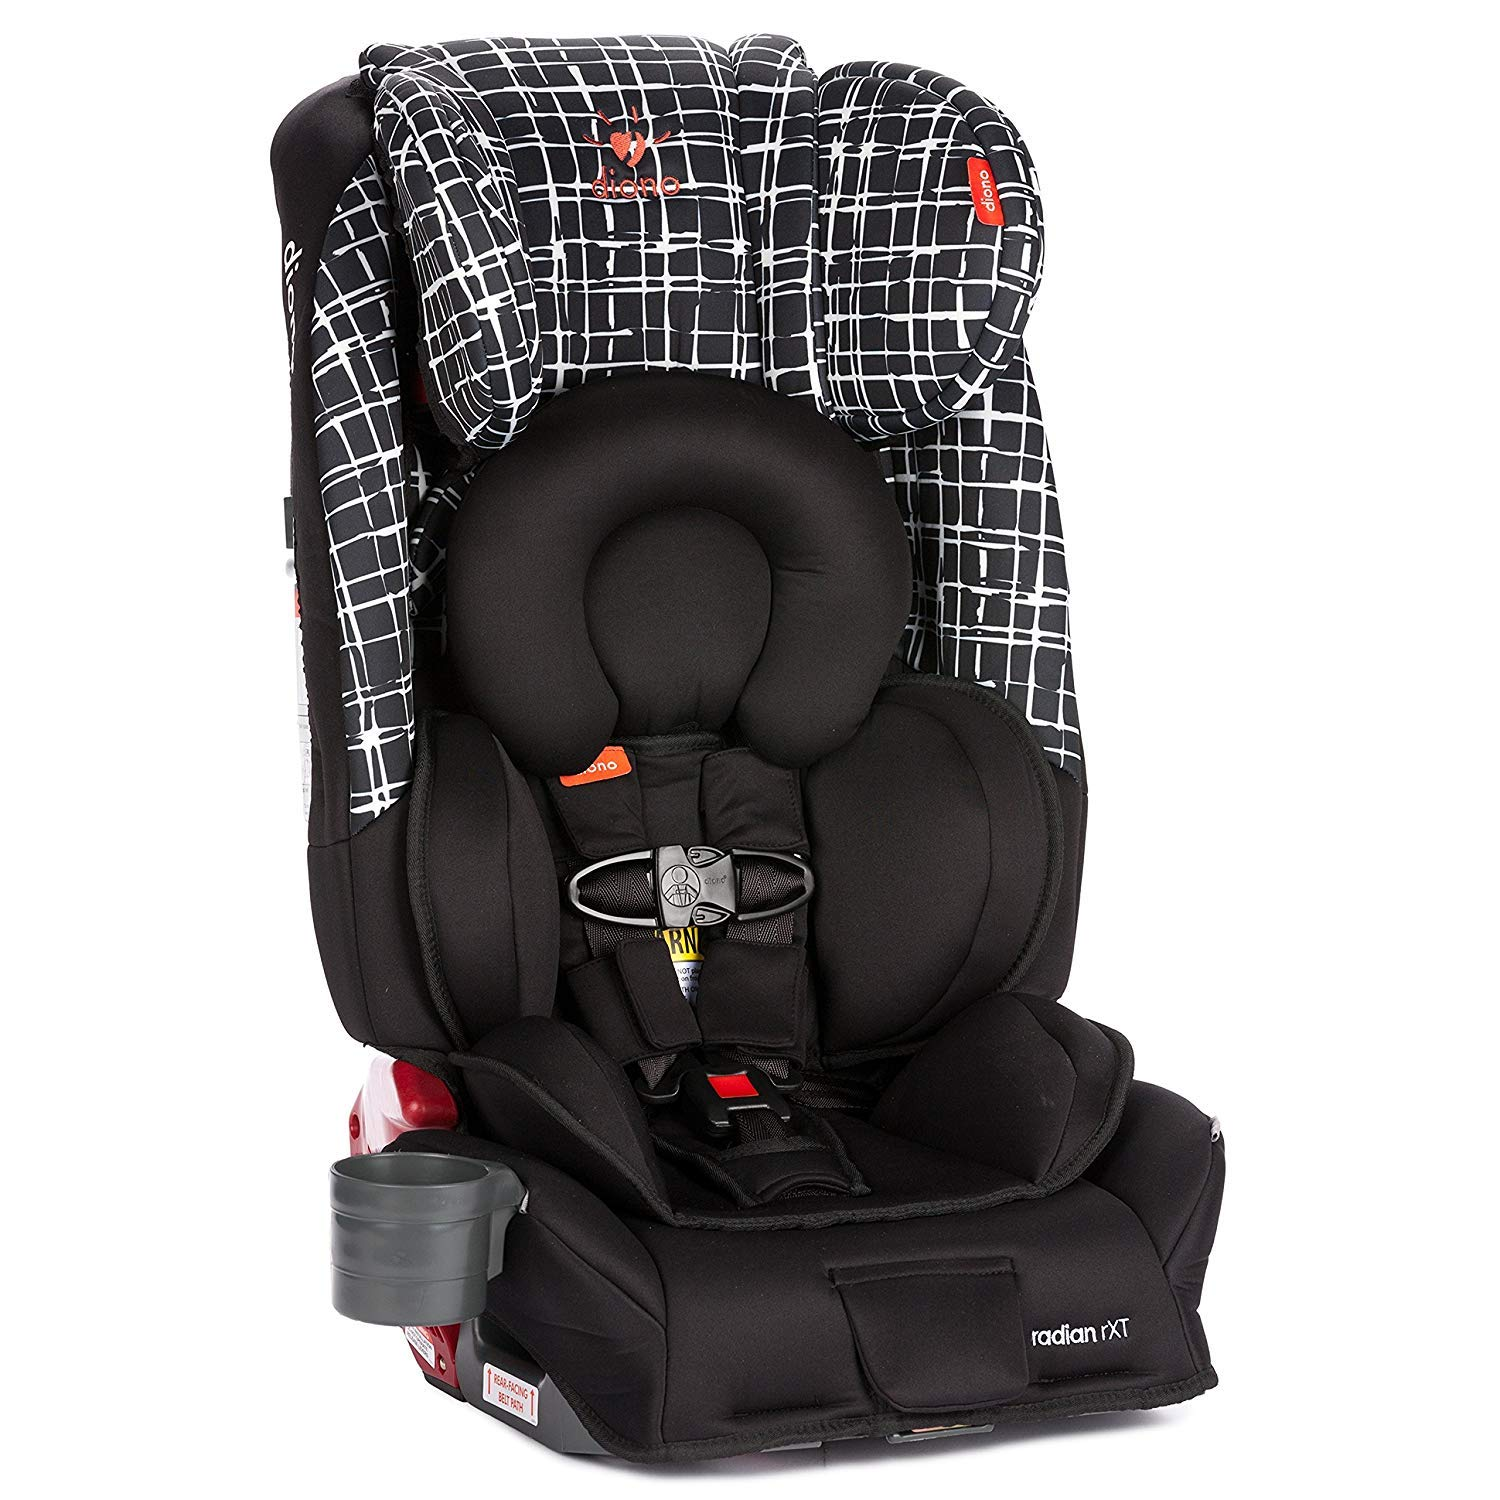 Top 9 Best Convertible Car Seat for Newborns 2020 1